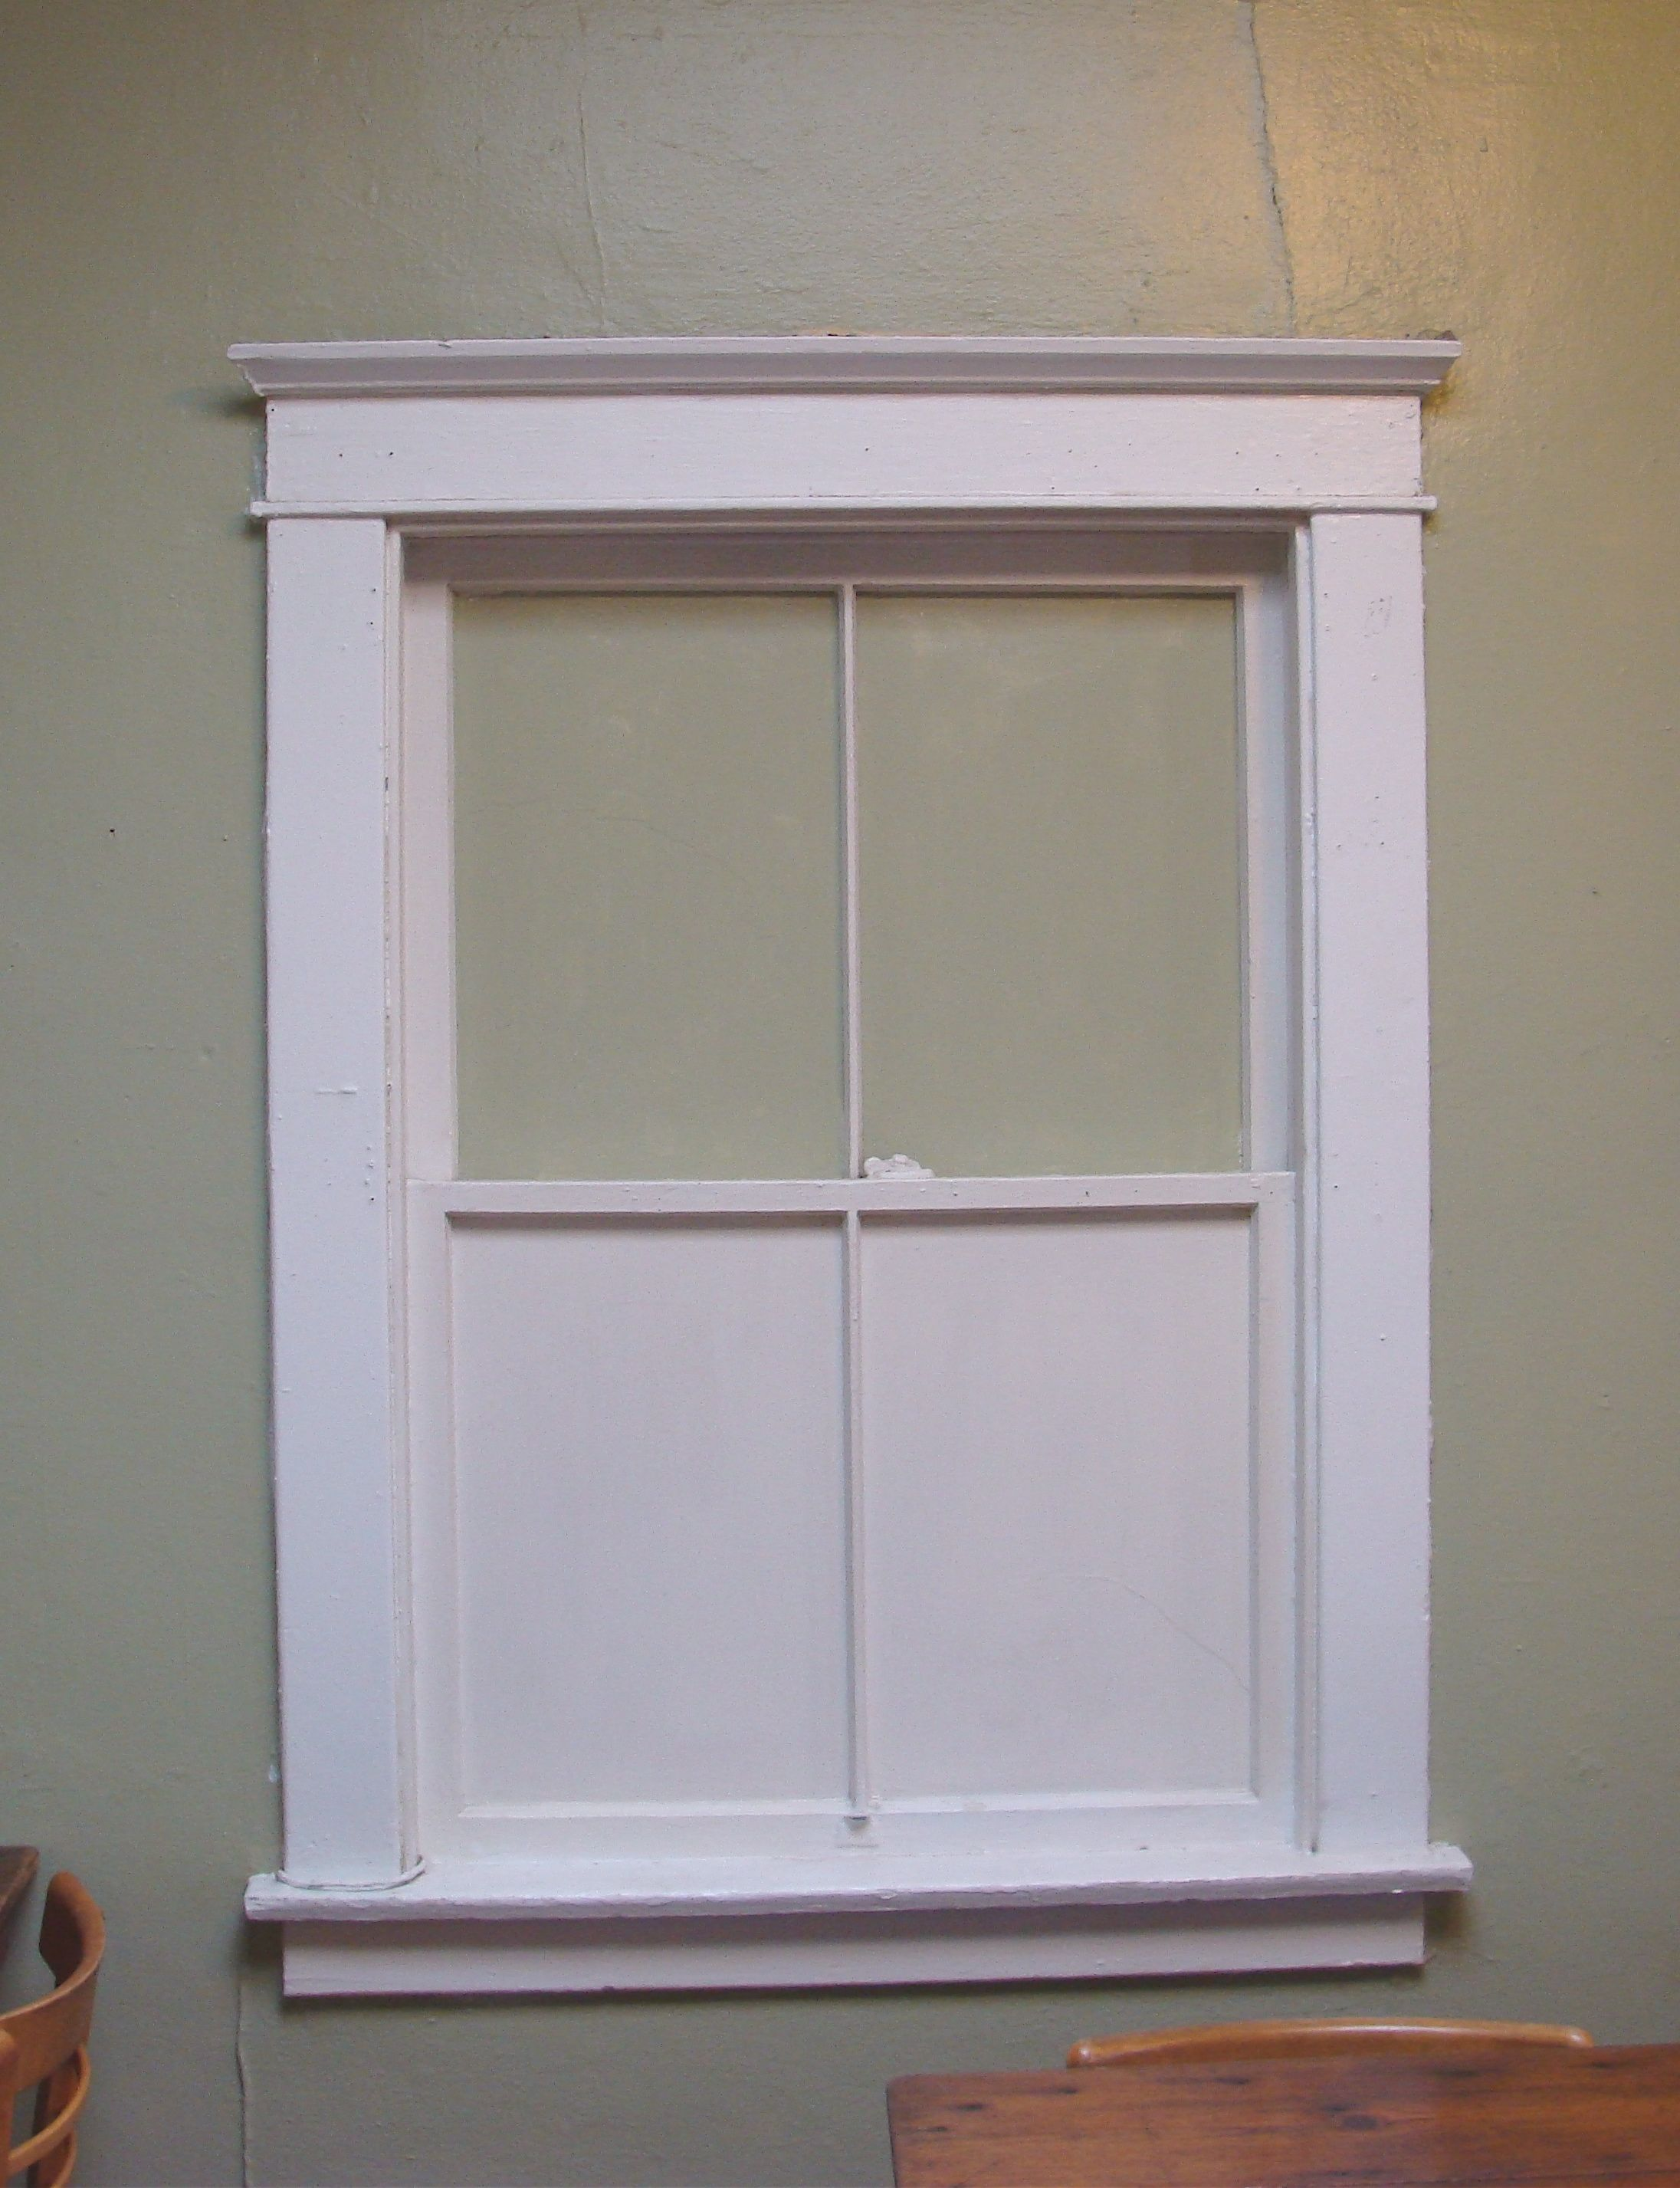 Craftsman Window Google Search Exterior Window Molding Idea House Ideas Pinterest